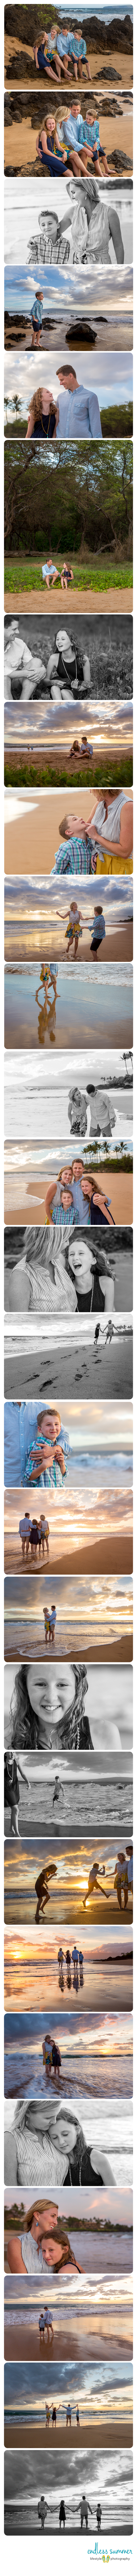 Maui-Lifestyle-Family-Photography